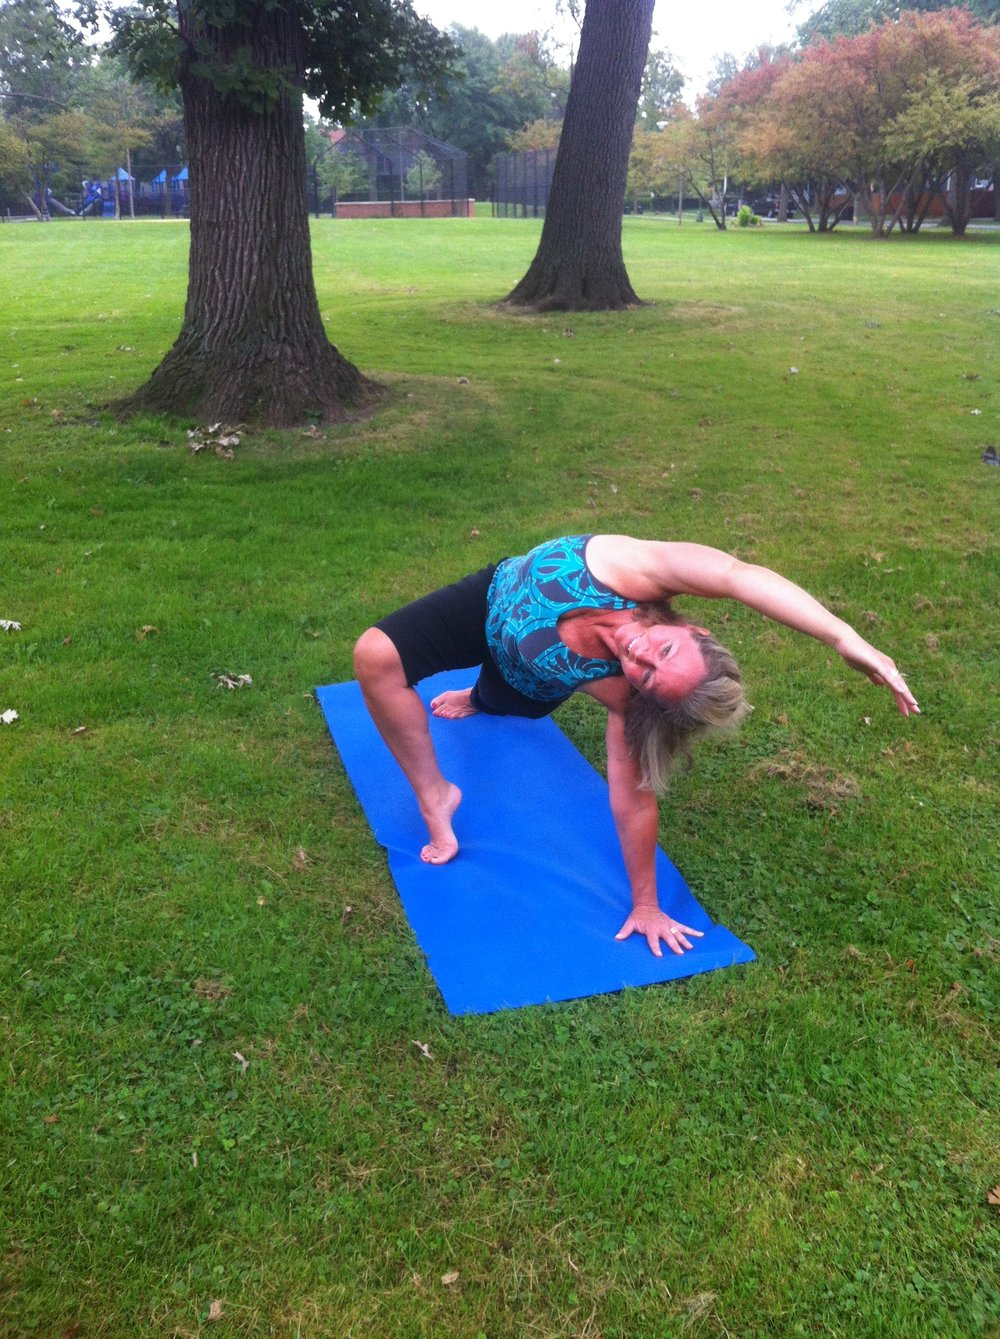 Colleen Patton - Teaches: Hatha YogaRead More about Colleen Here